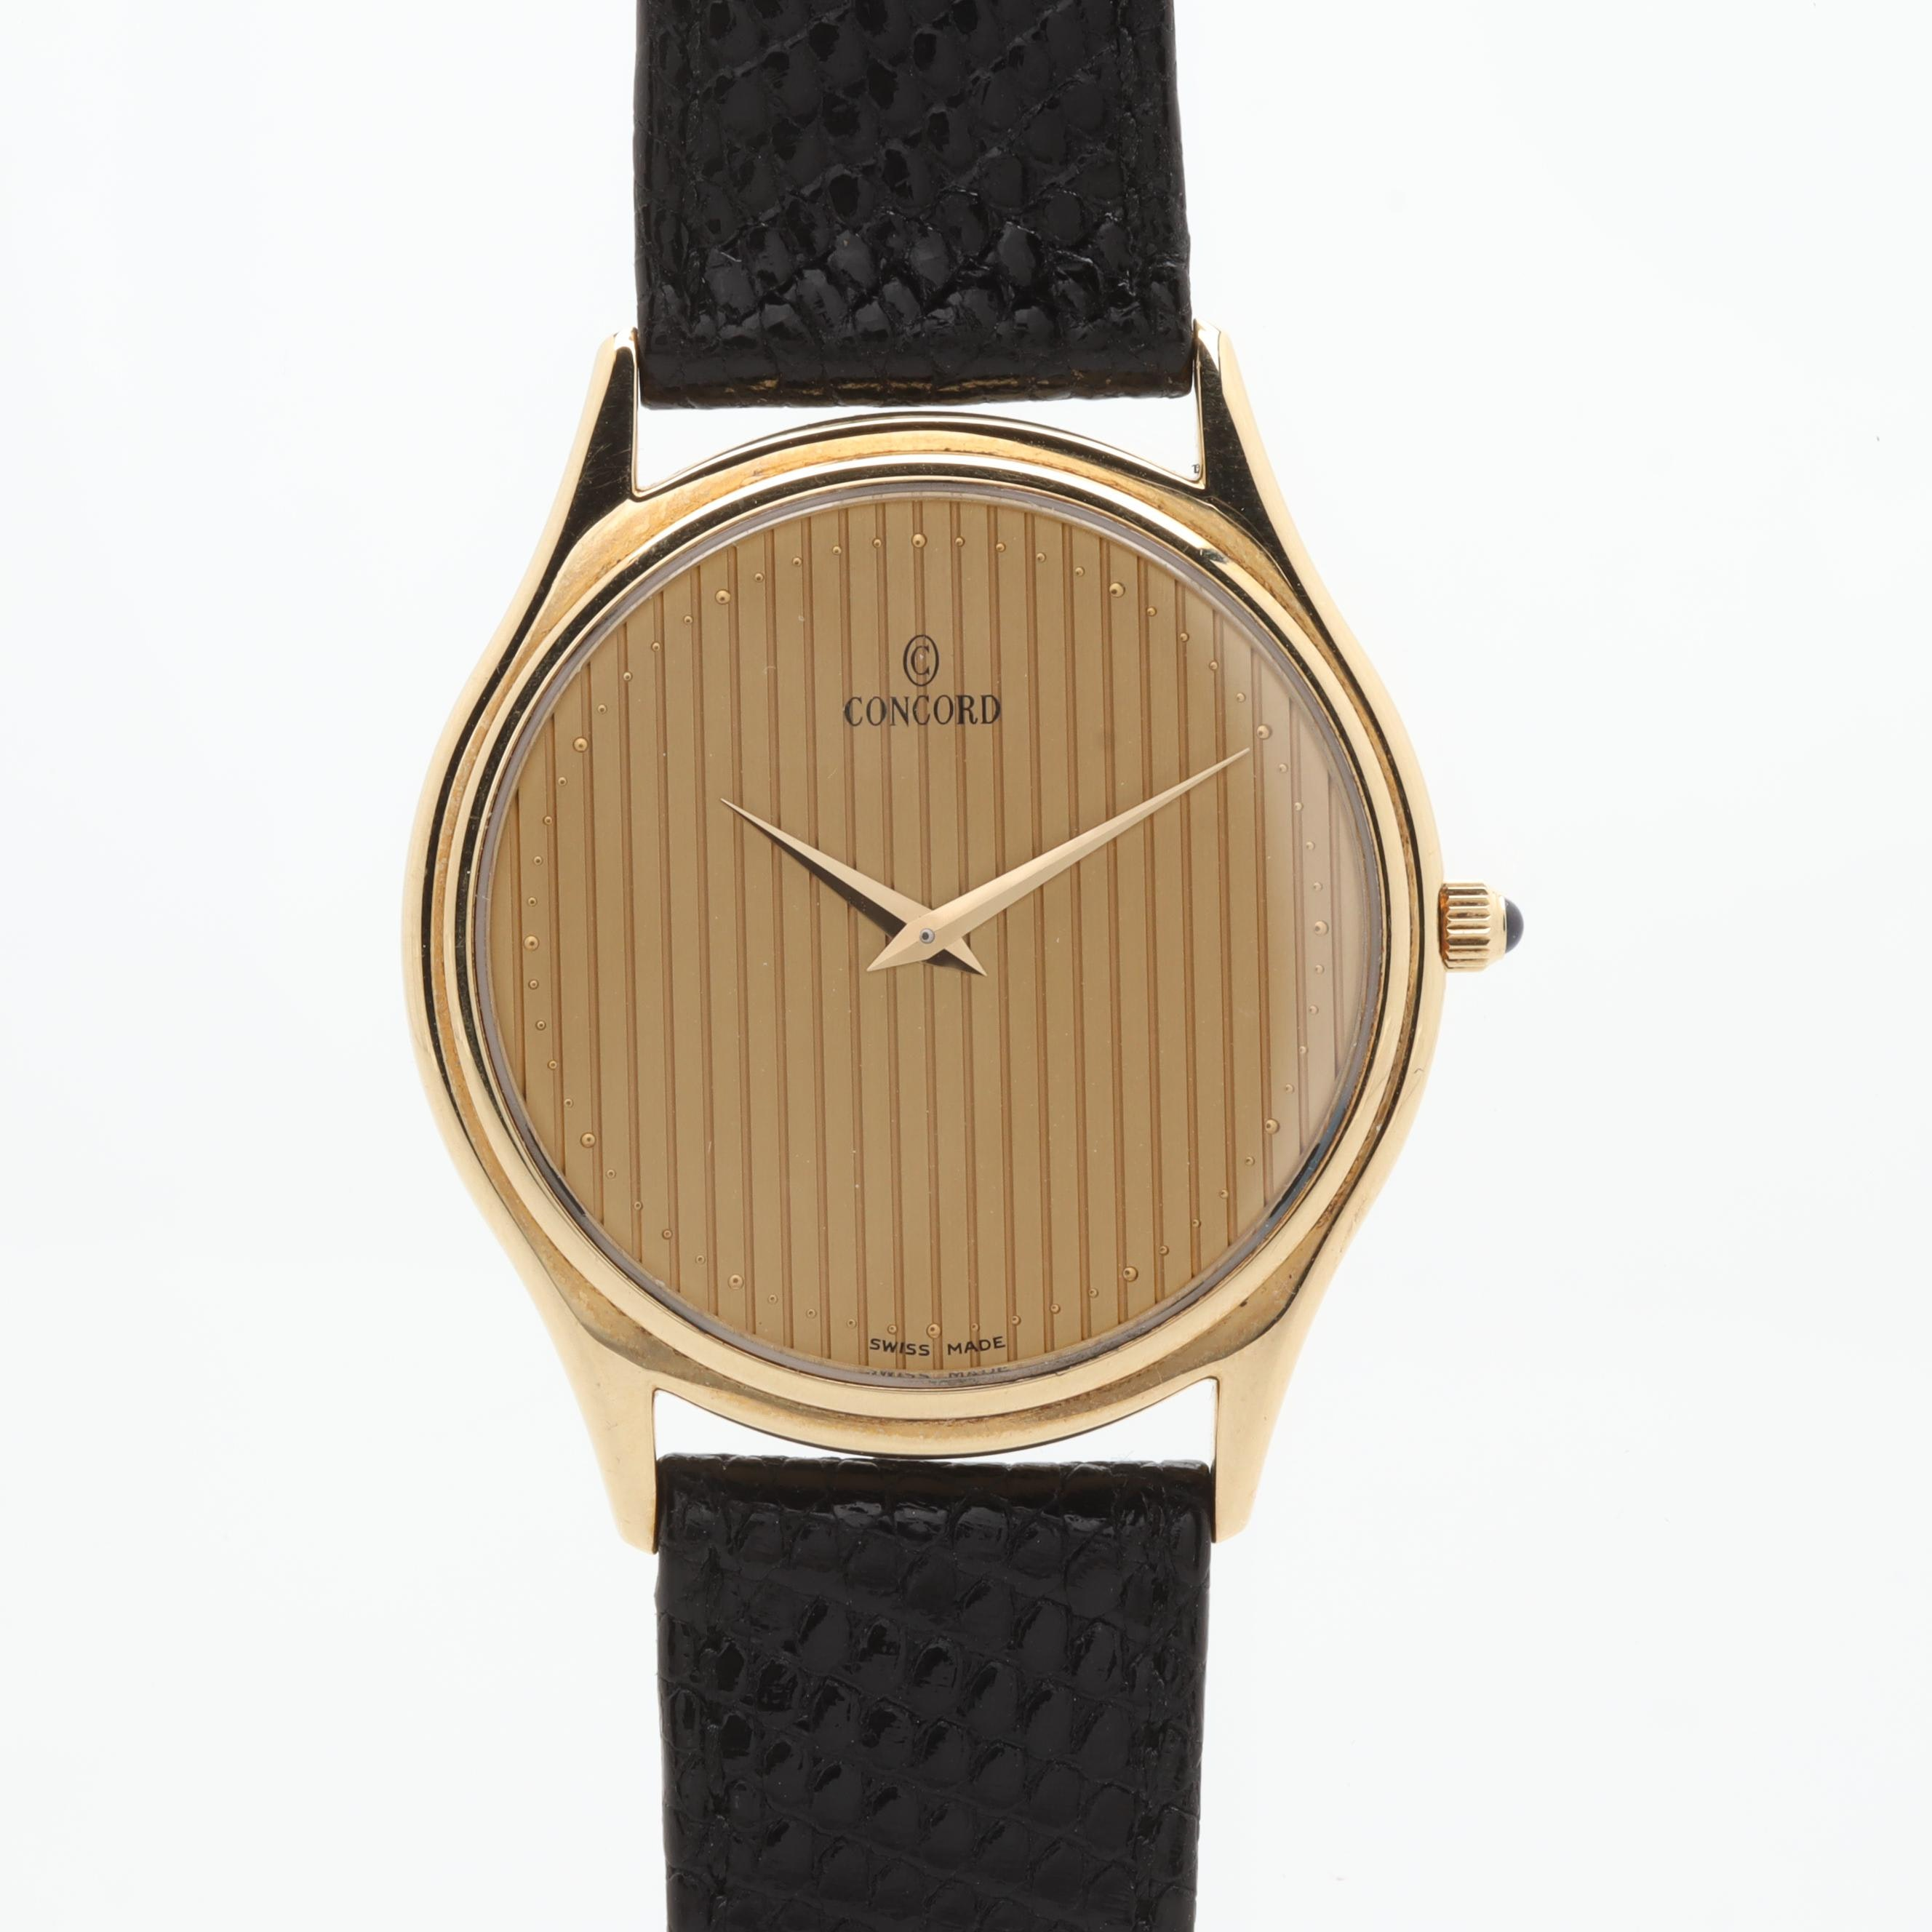 Concord 14K Yellow Gold and Leather Thin Dress Wristwatch